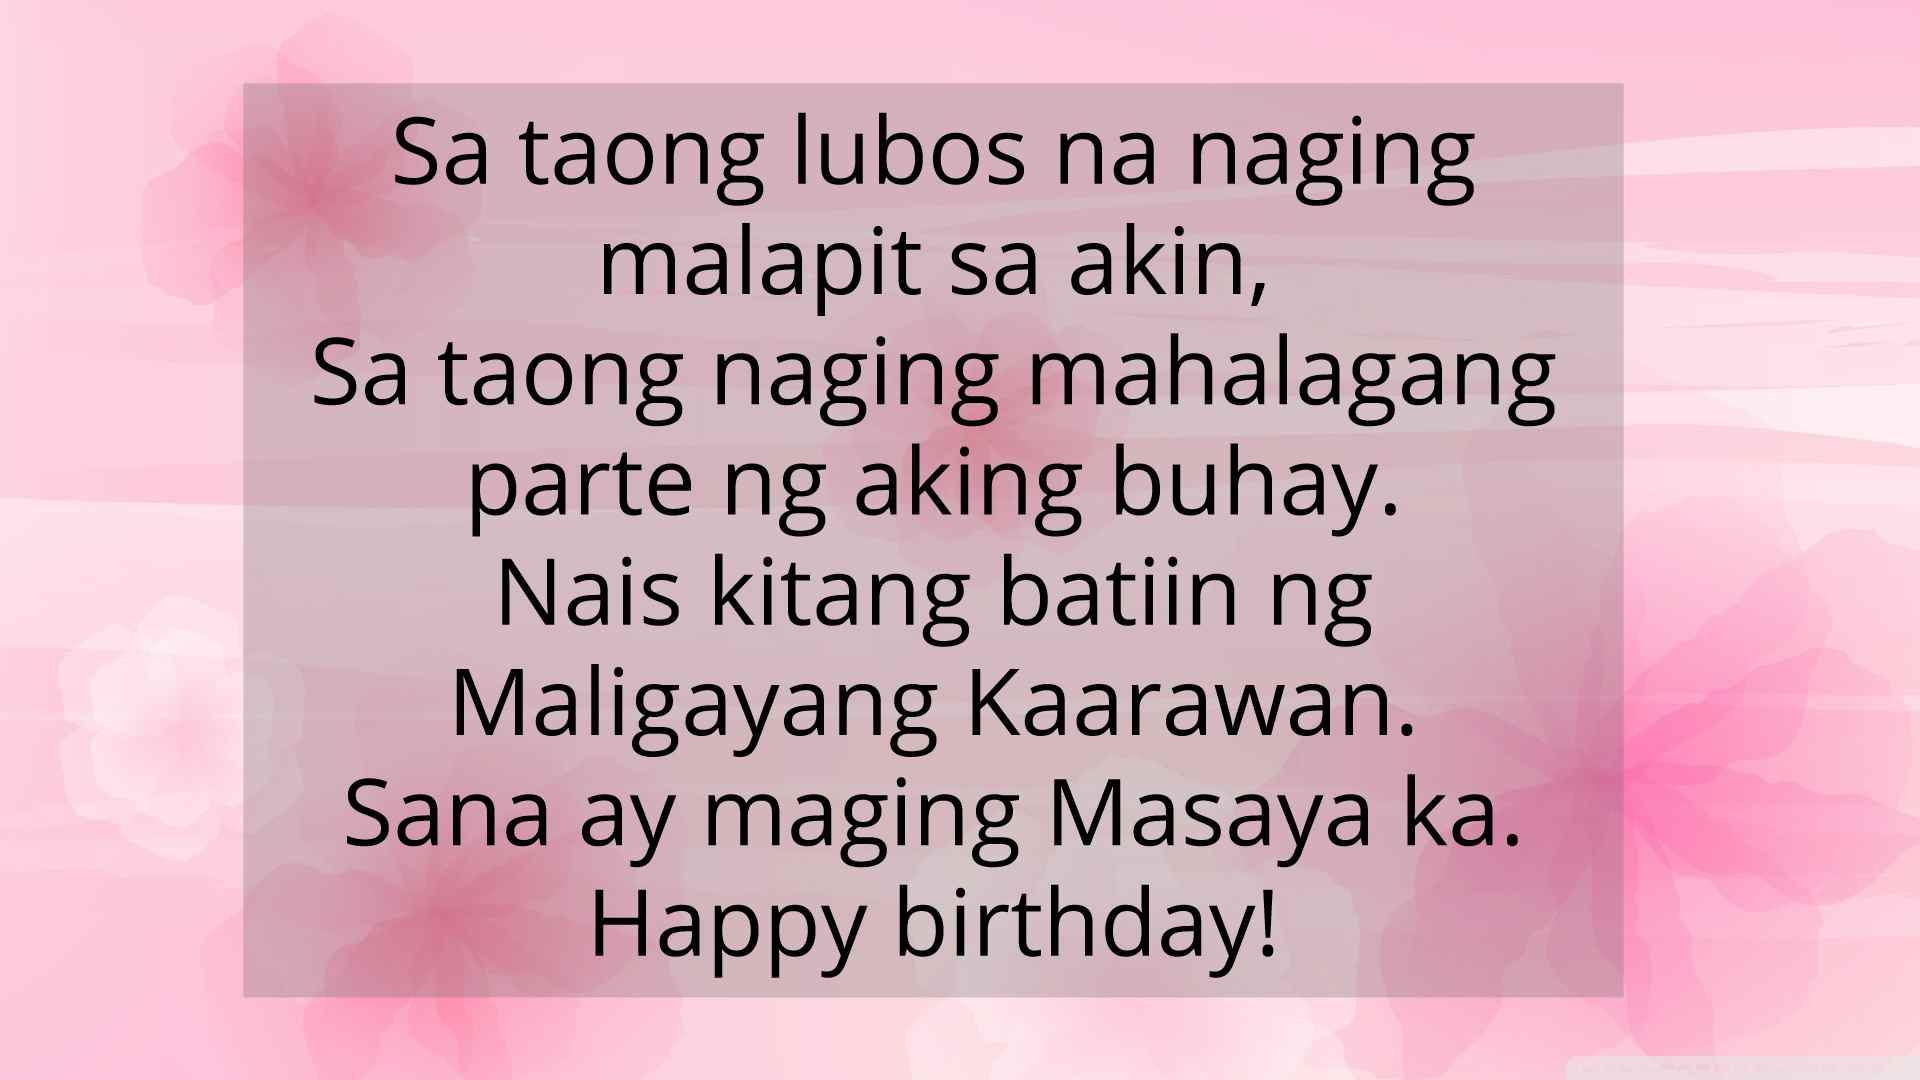 Birthday Wishes For Father In Tagalog Birthday Wishes Happy Birthday Wishes Birthday